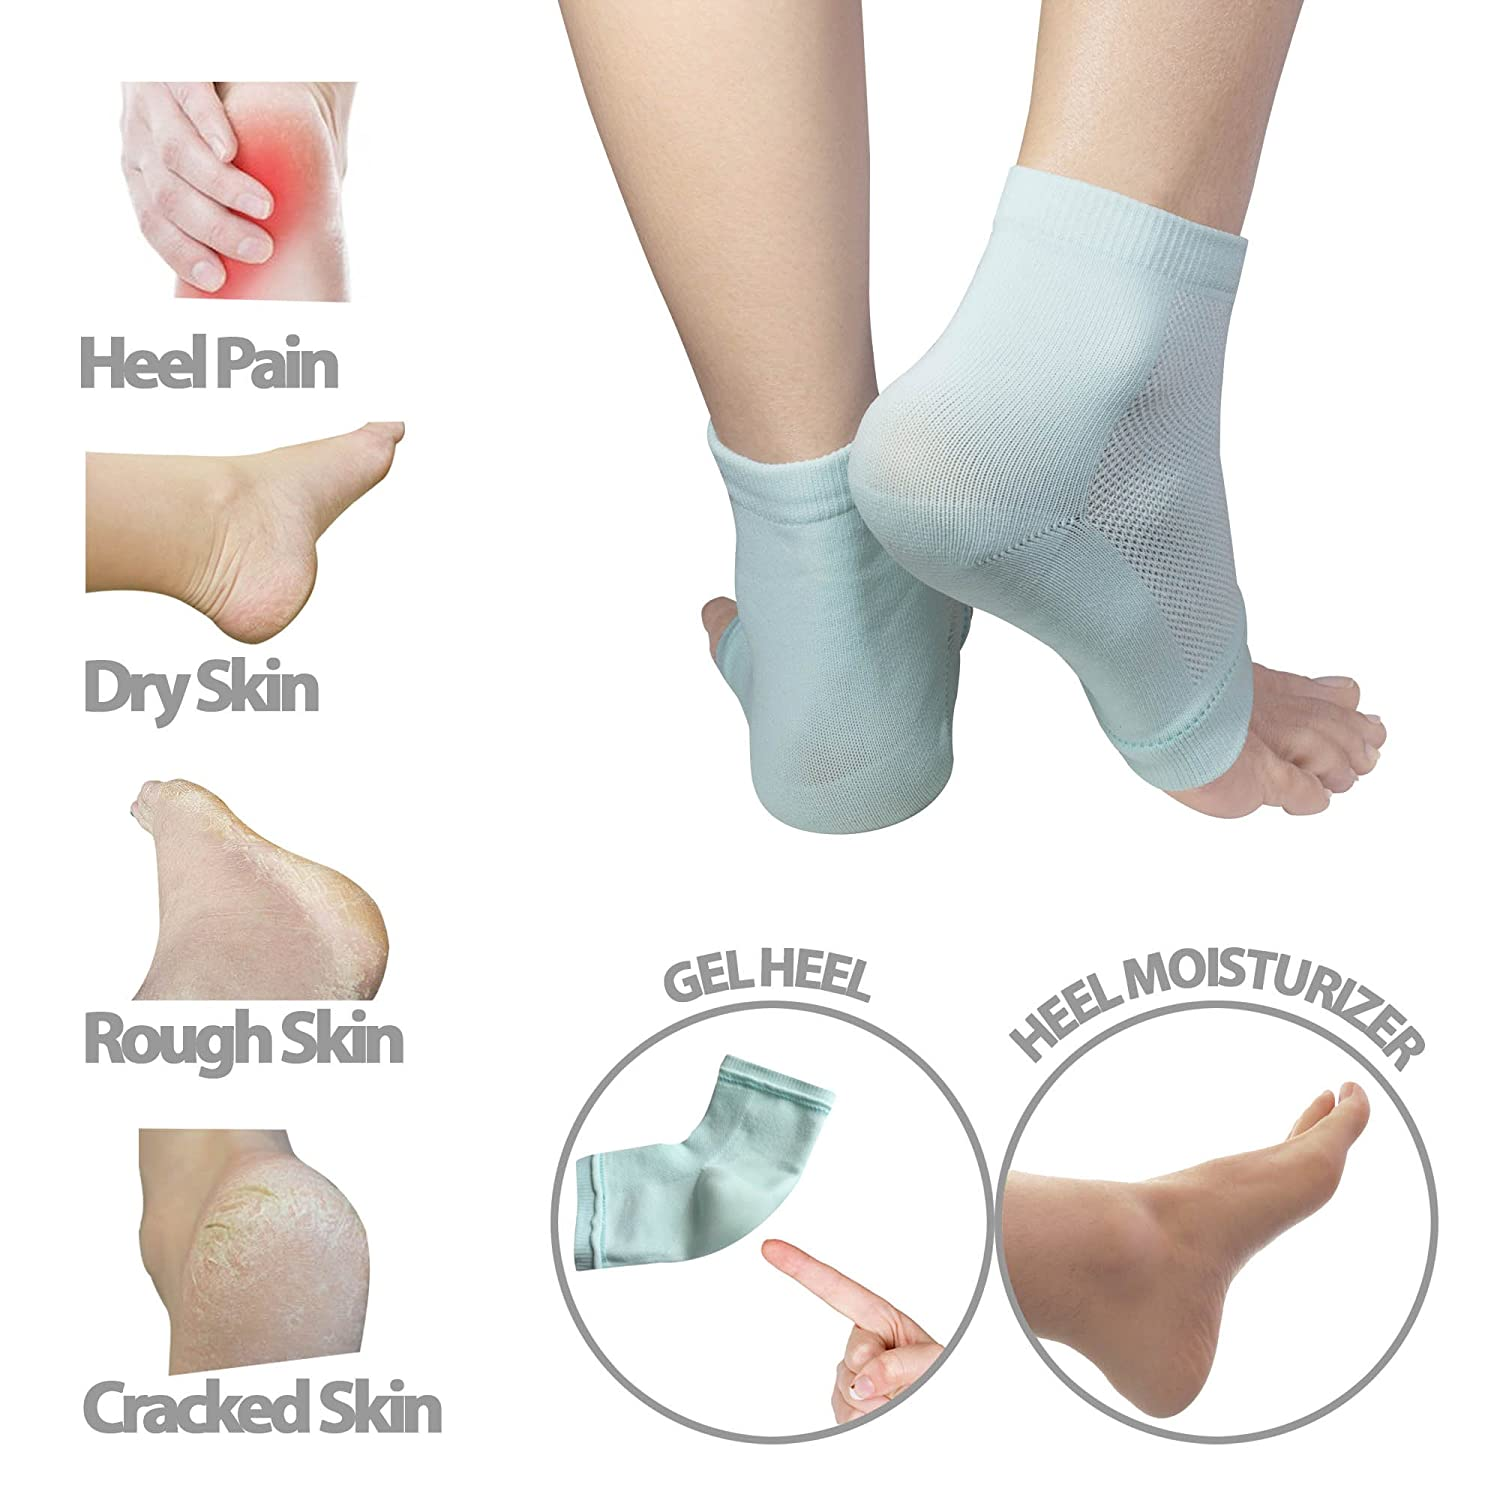 2 PAIR - Moisturizing Gel Heel Socks w/ Enriched Vitamins for Dry Hard Cracked Heels & DIY Simple Home Remedies by Triim Fitness